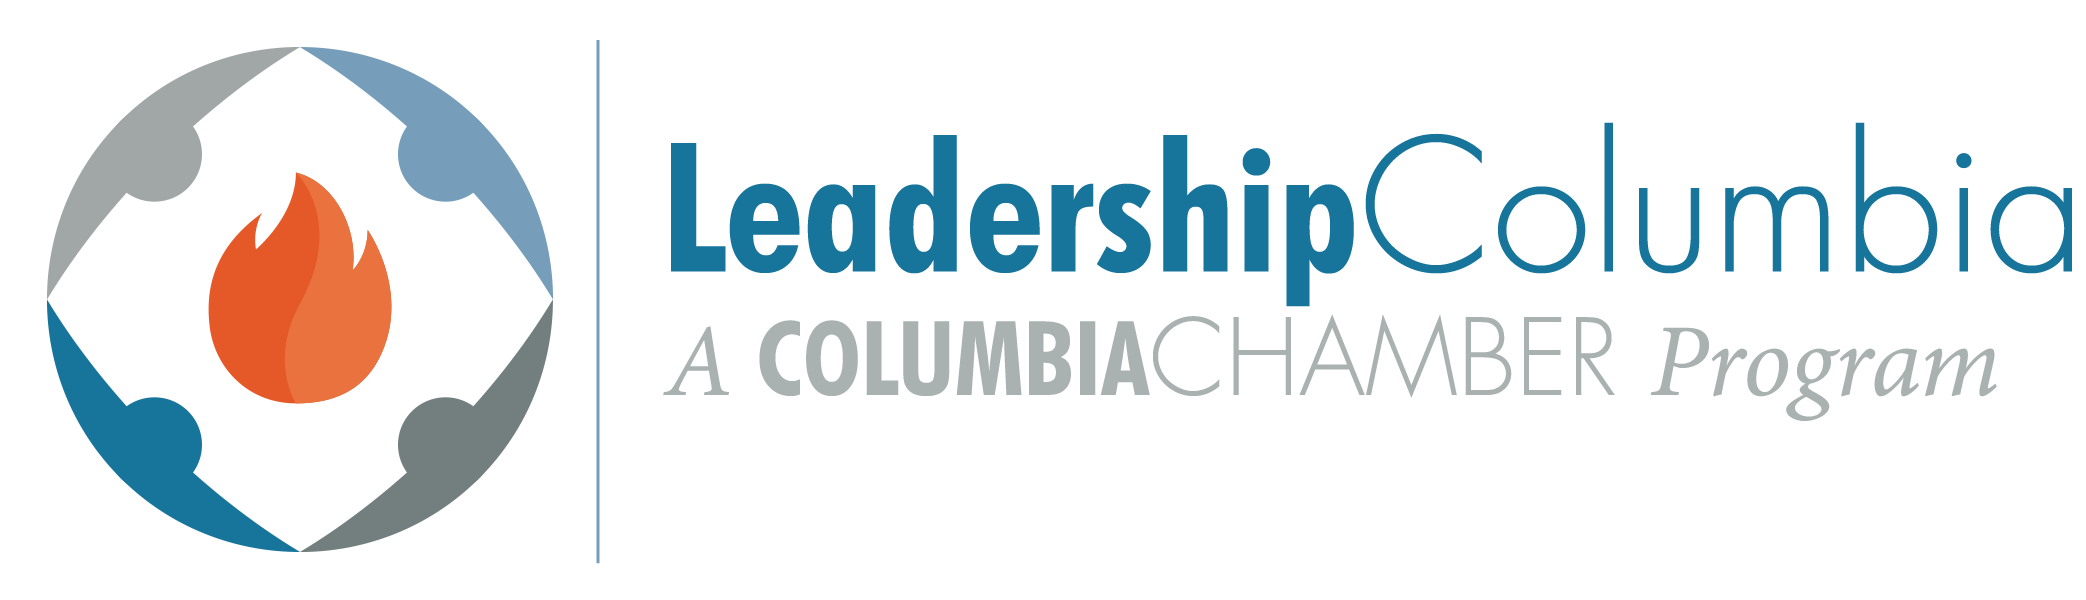 Leadership Columbia Class of 2019 Project RFP Survey